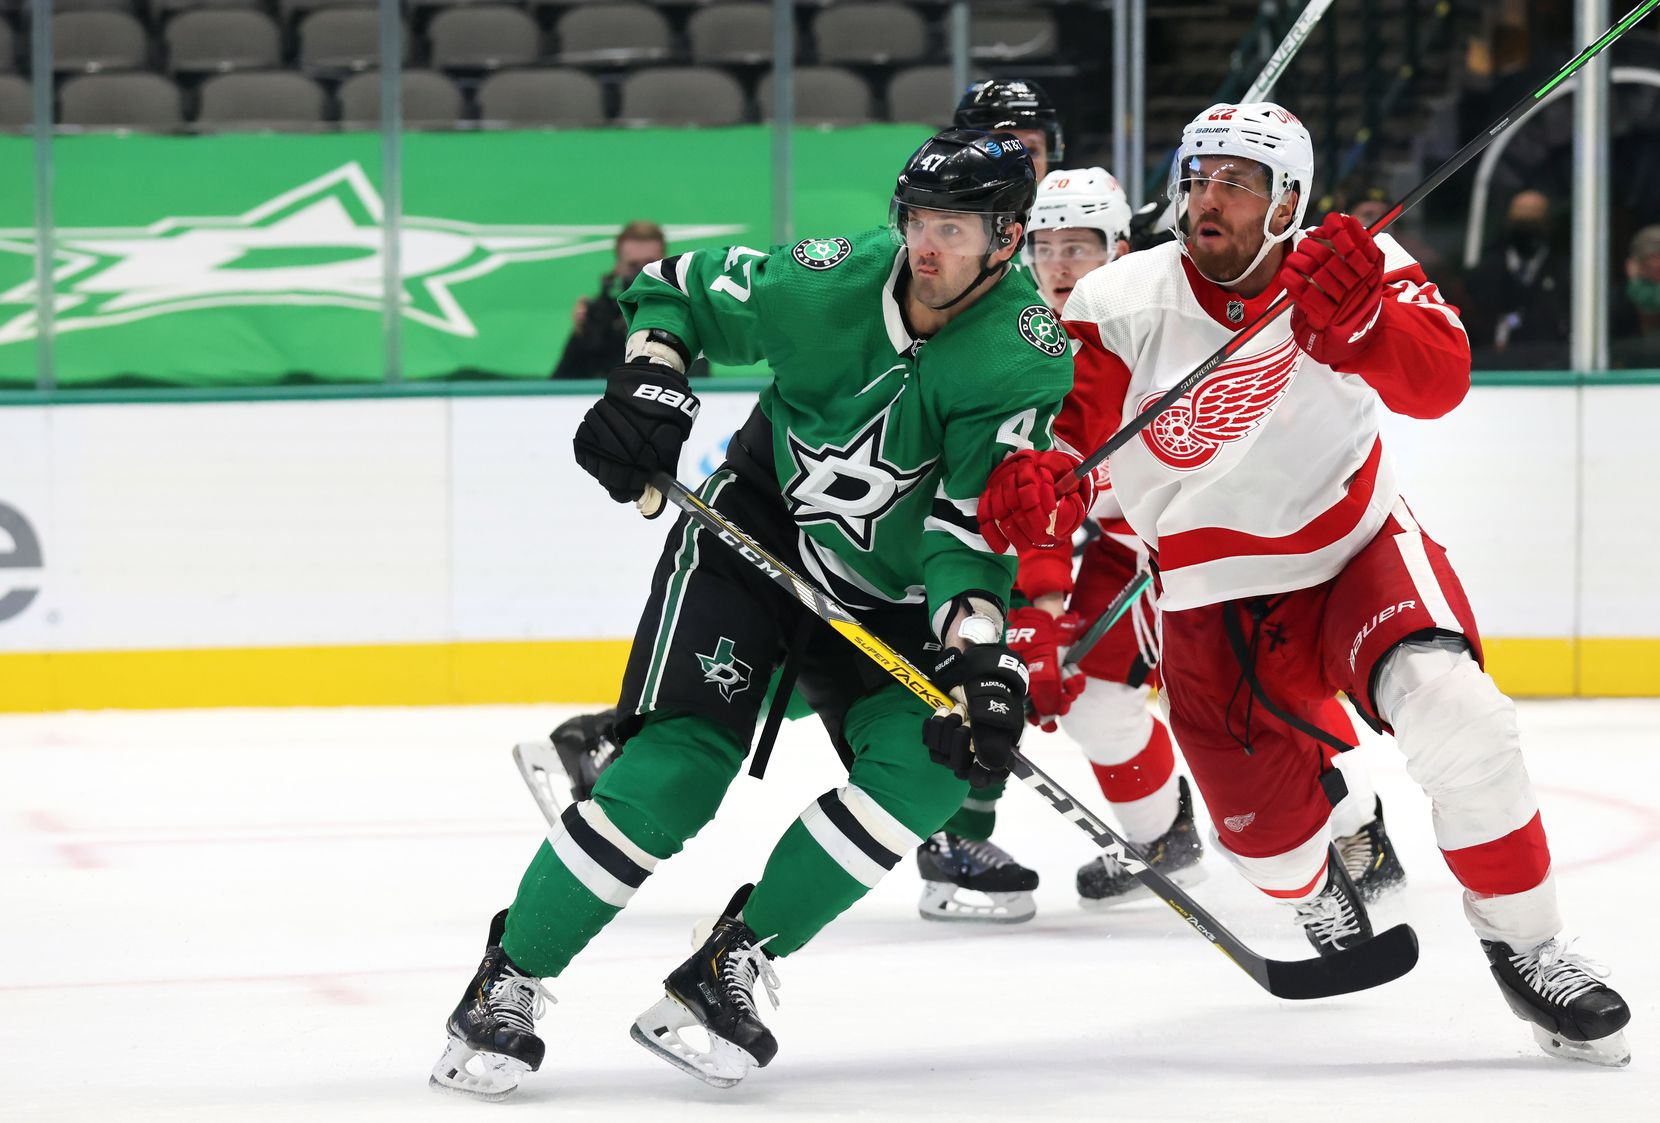 Dallas Stars right wing Alexander Radulov (47) and Detroit Red Wings defenseman Patrik Nemeth (22) fight for position during the third period of play at American Airlines Center on Tuesday, January 26, 2021in Dallas. (Vernon Bryant/The Dallas Morning News)